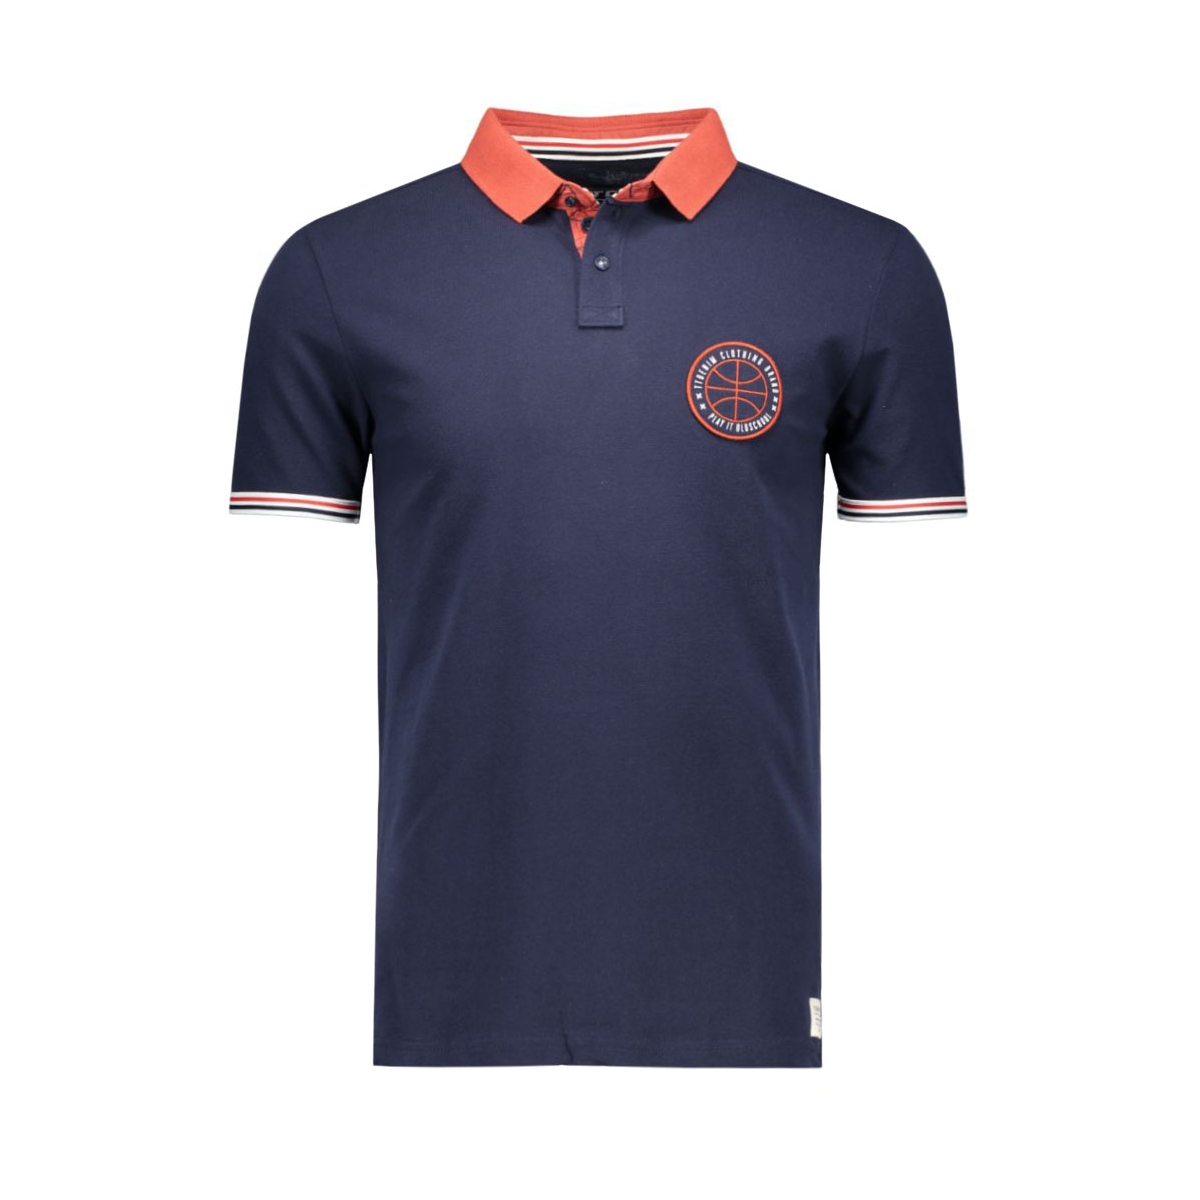 1530982.00.12 tom tailor polo 6576